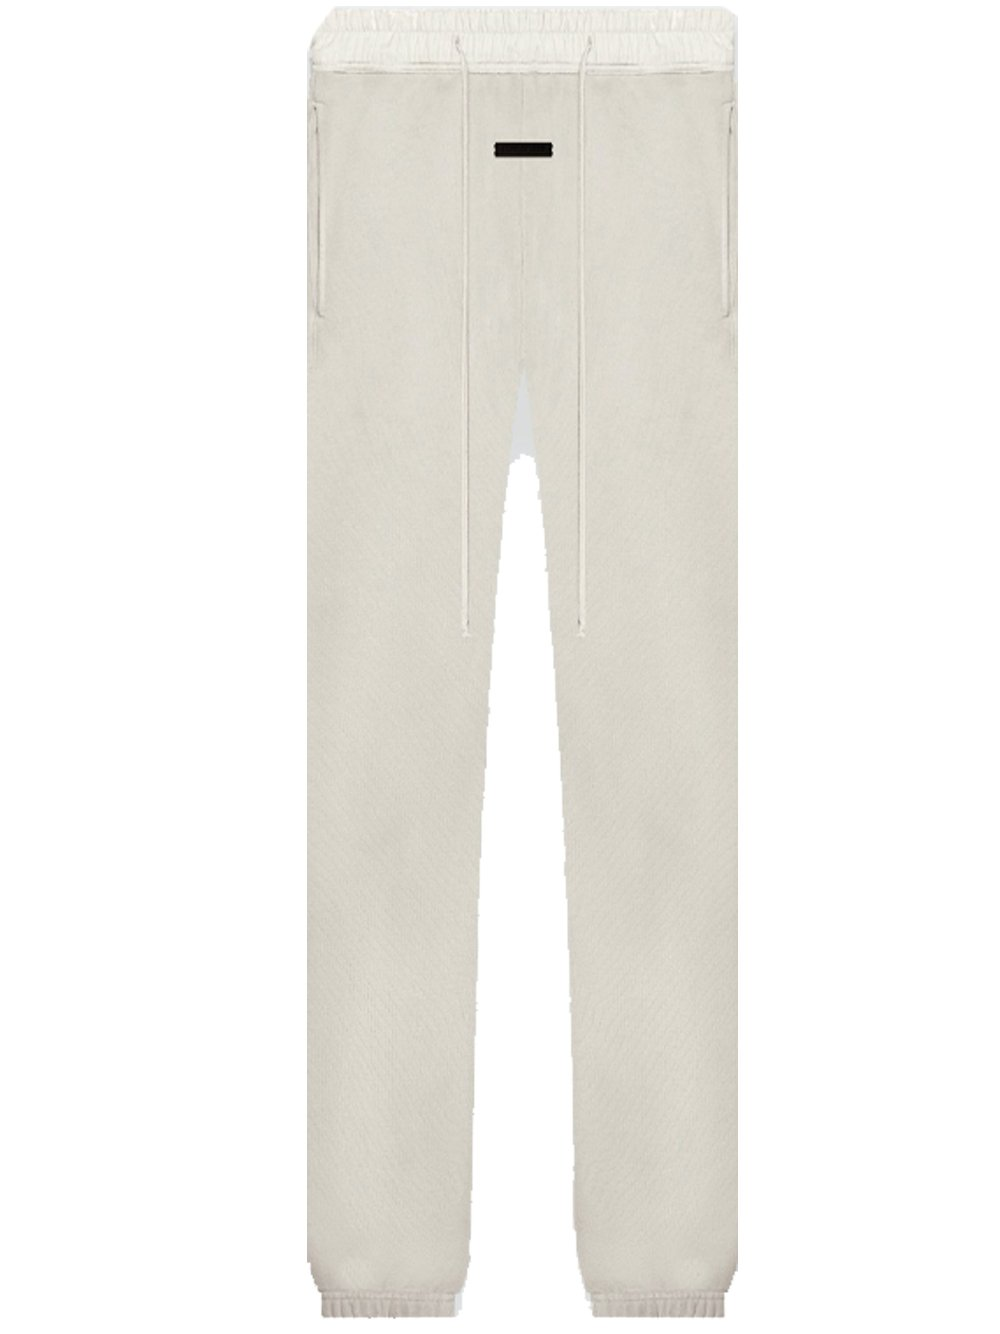 FEAR OF GOD Vintage Track Pant Concrete White